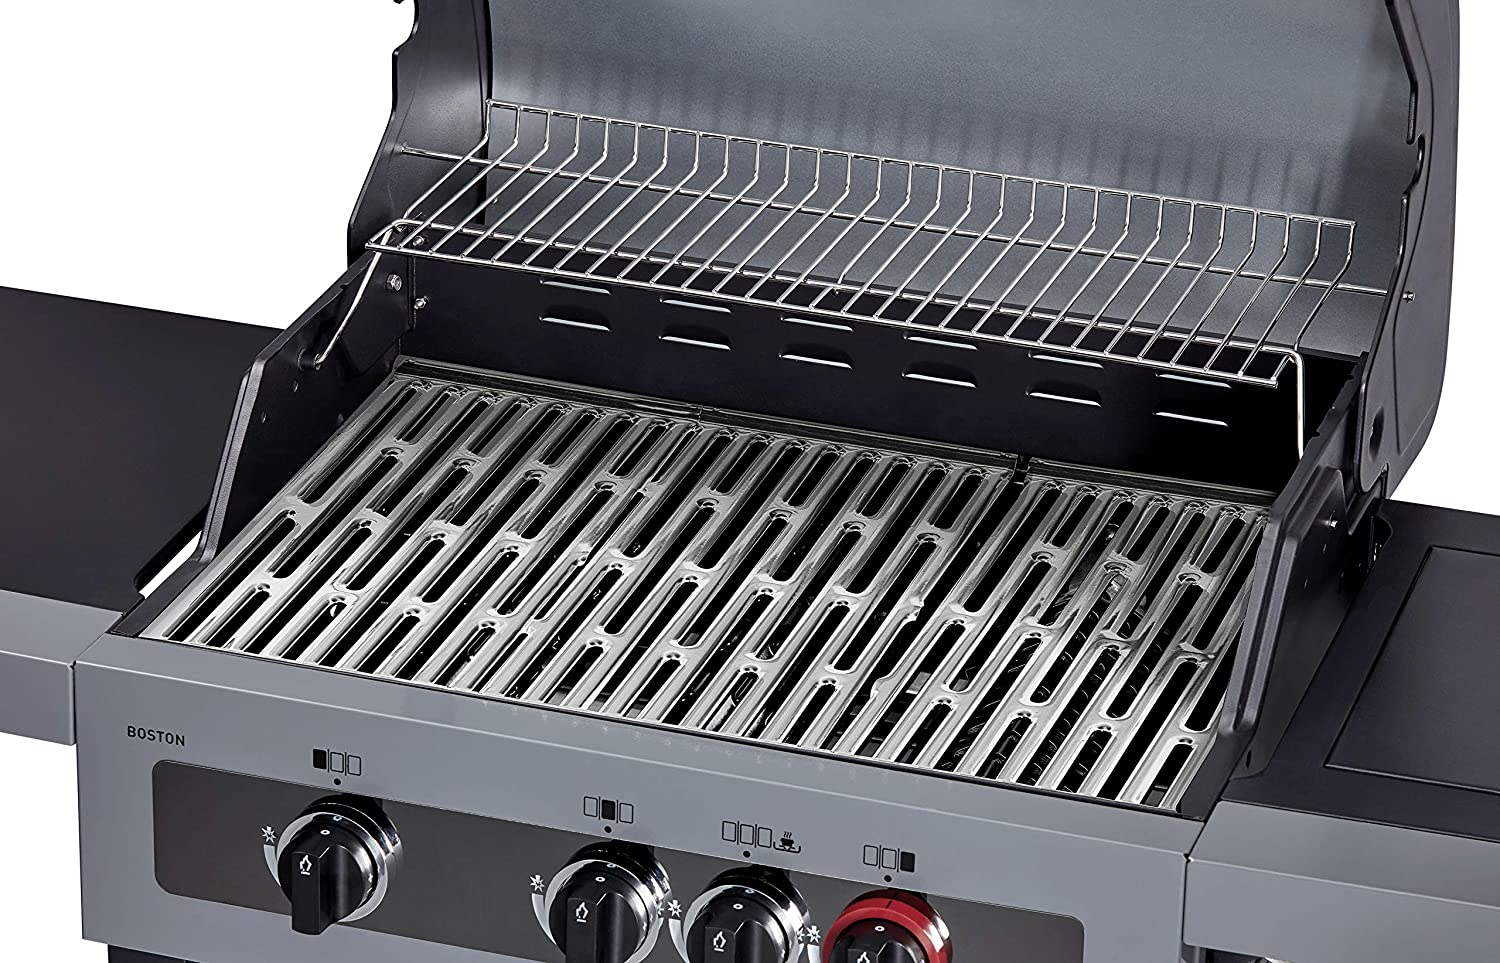 Enders Gasgrill Test Boston : Aldi sÜd bbq gasgrill boston flammig mydealz